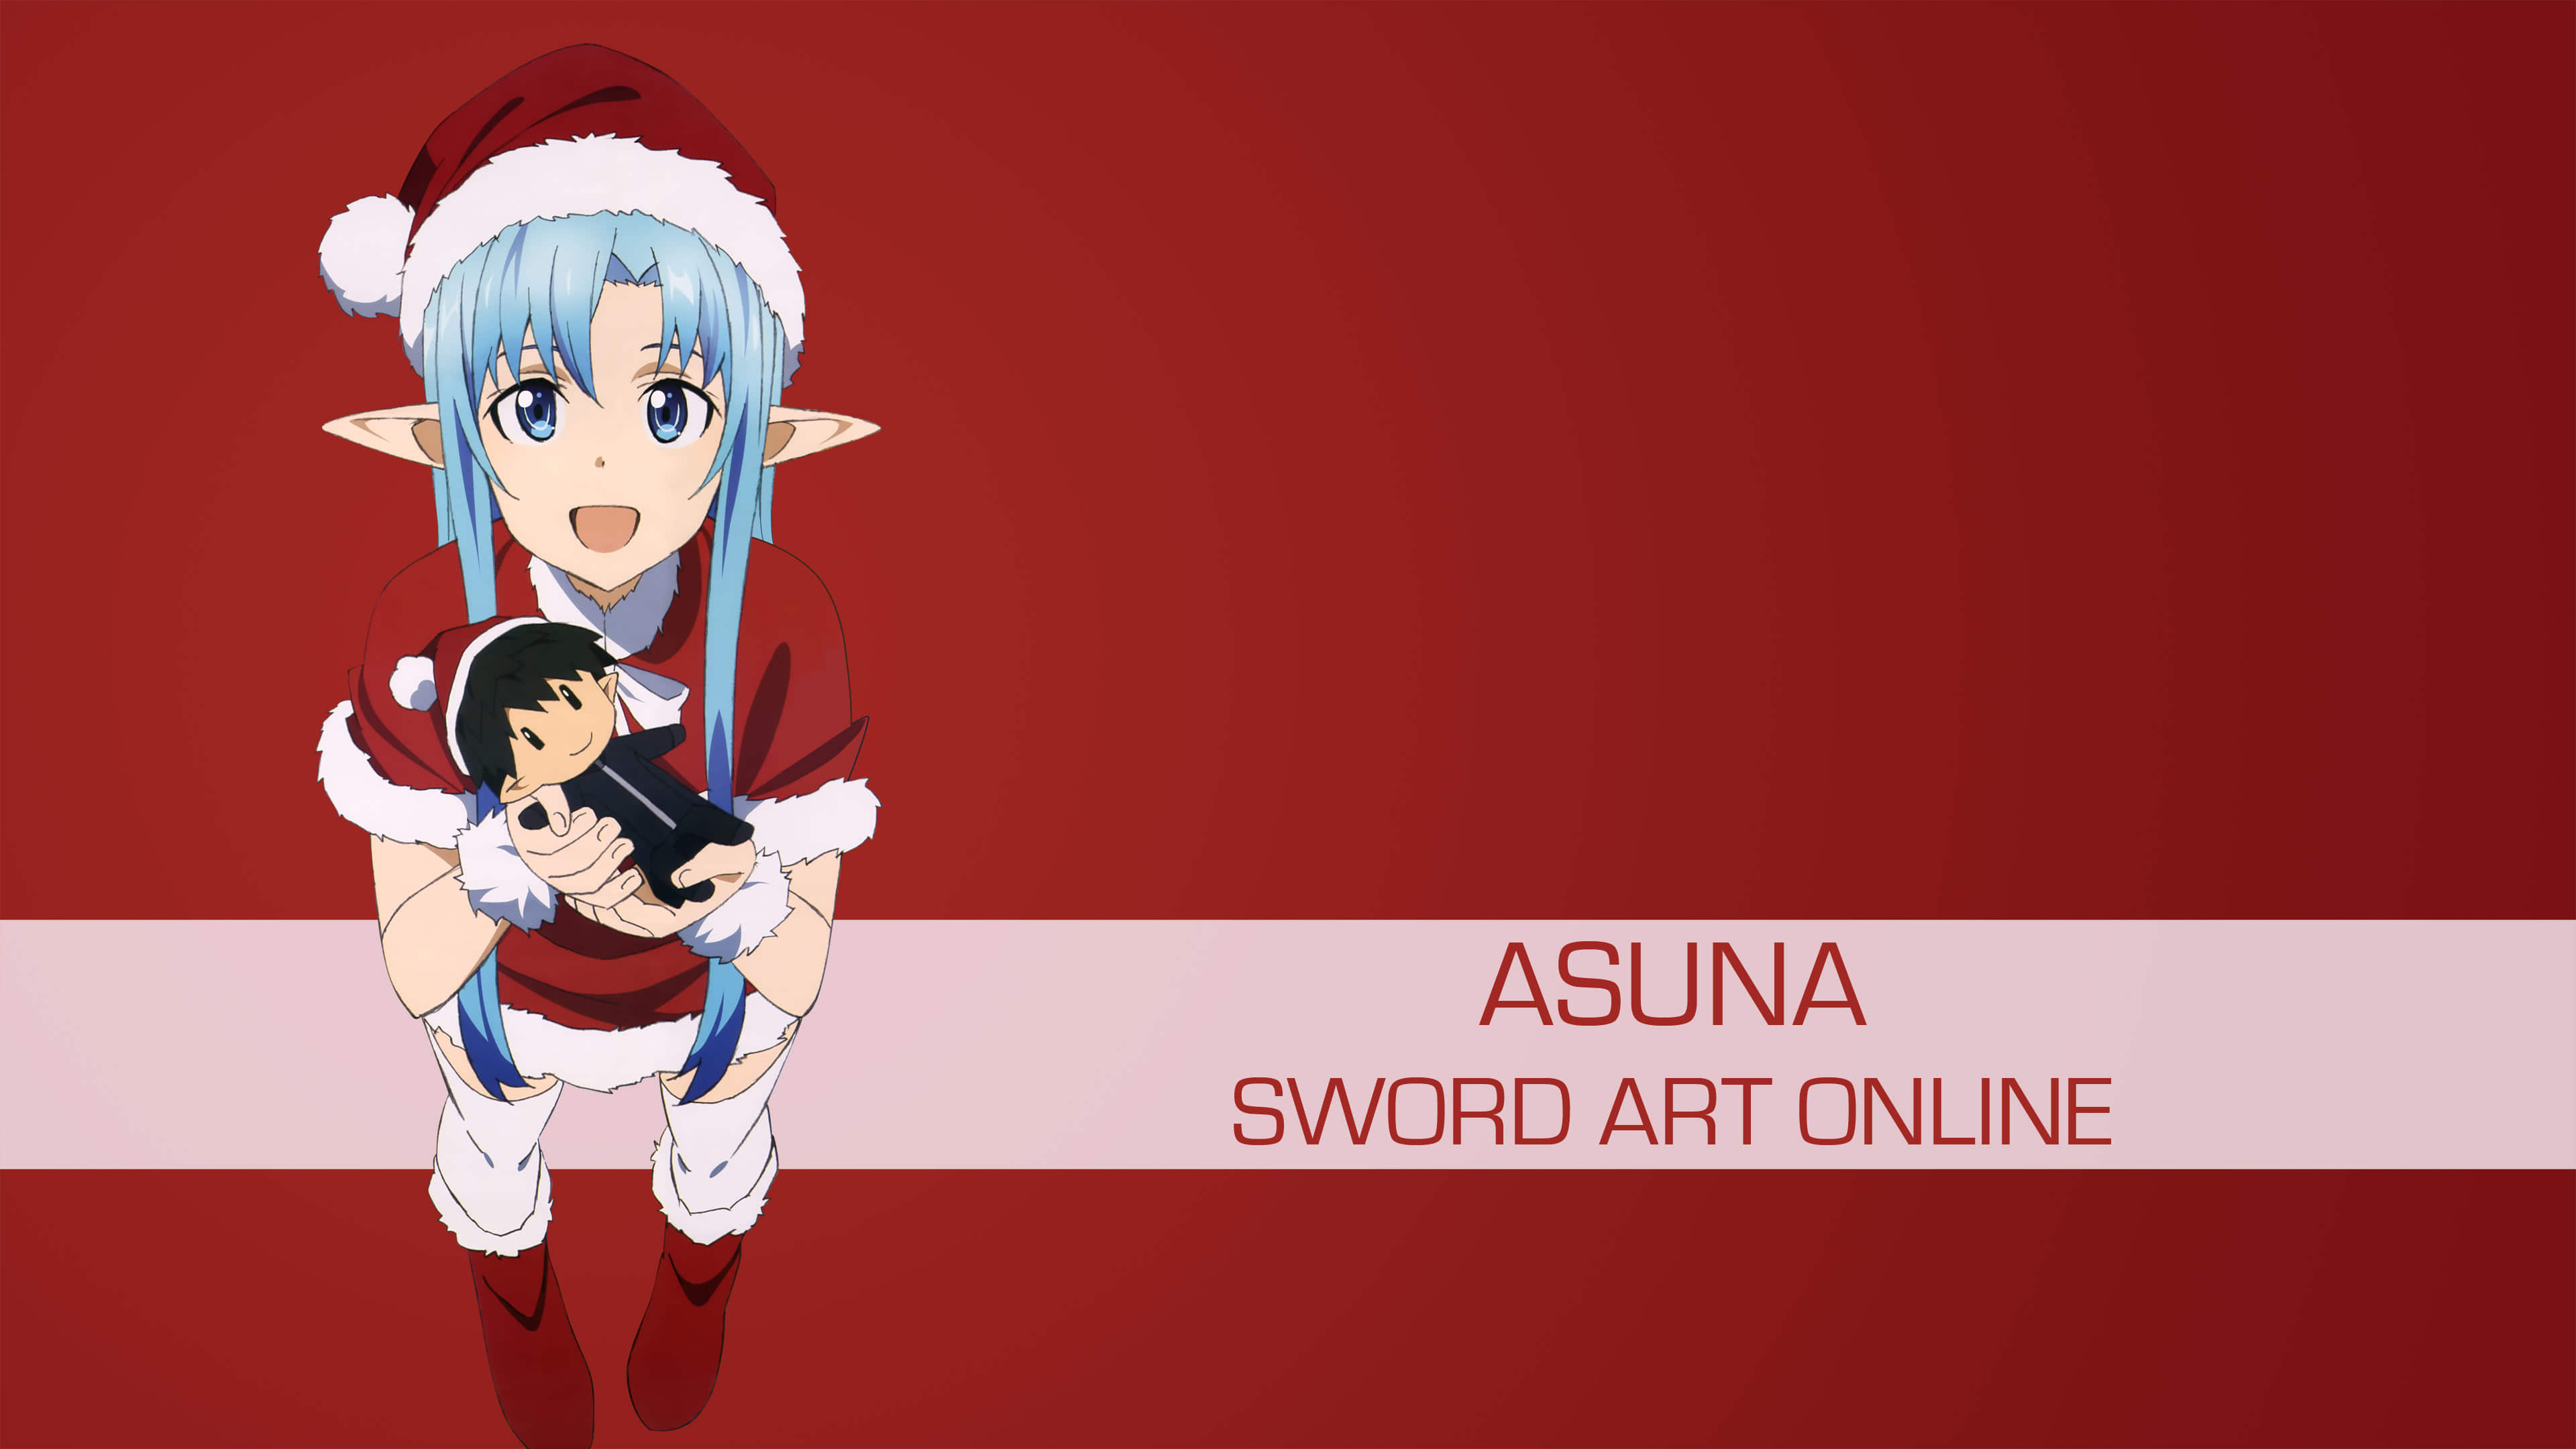 asuna christmas sword art online uhd 4k wallpaper